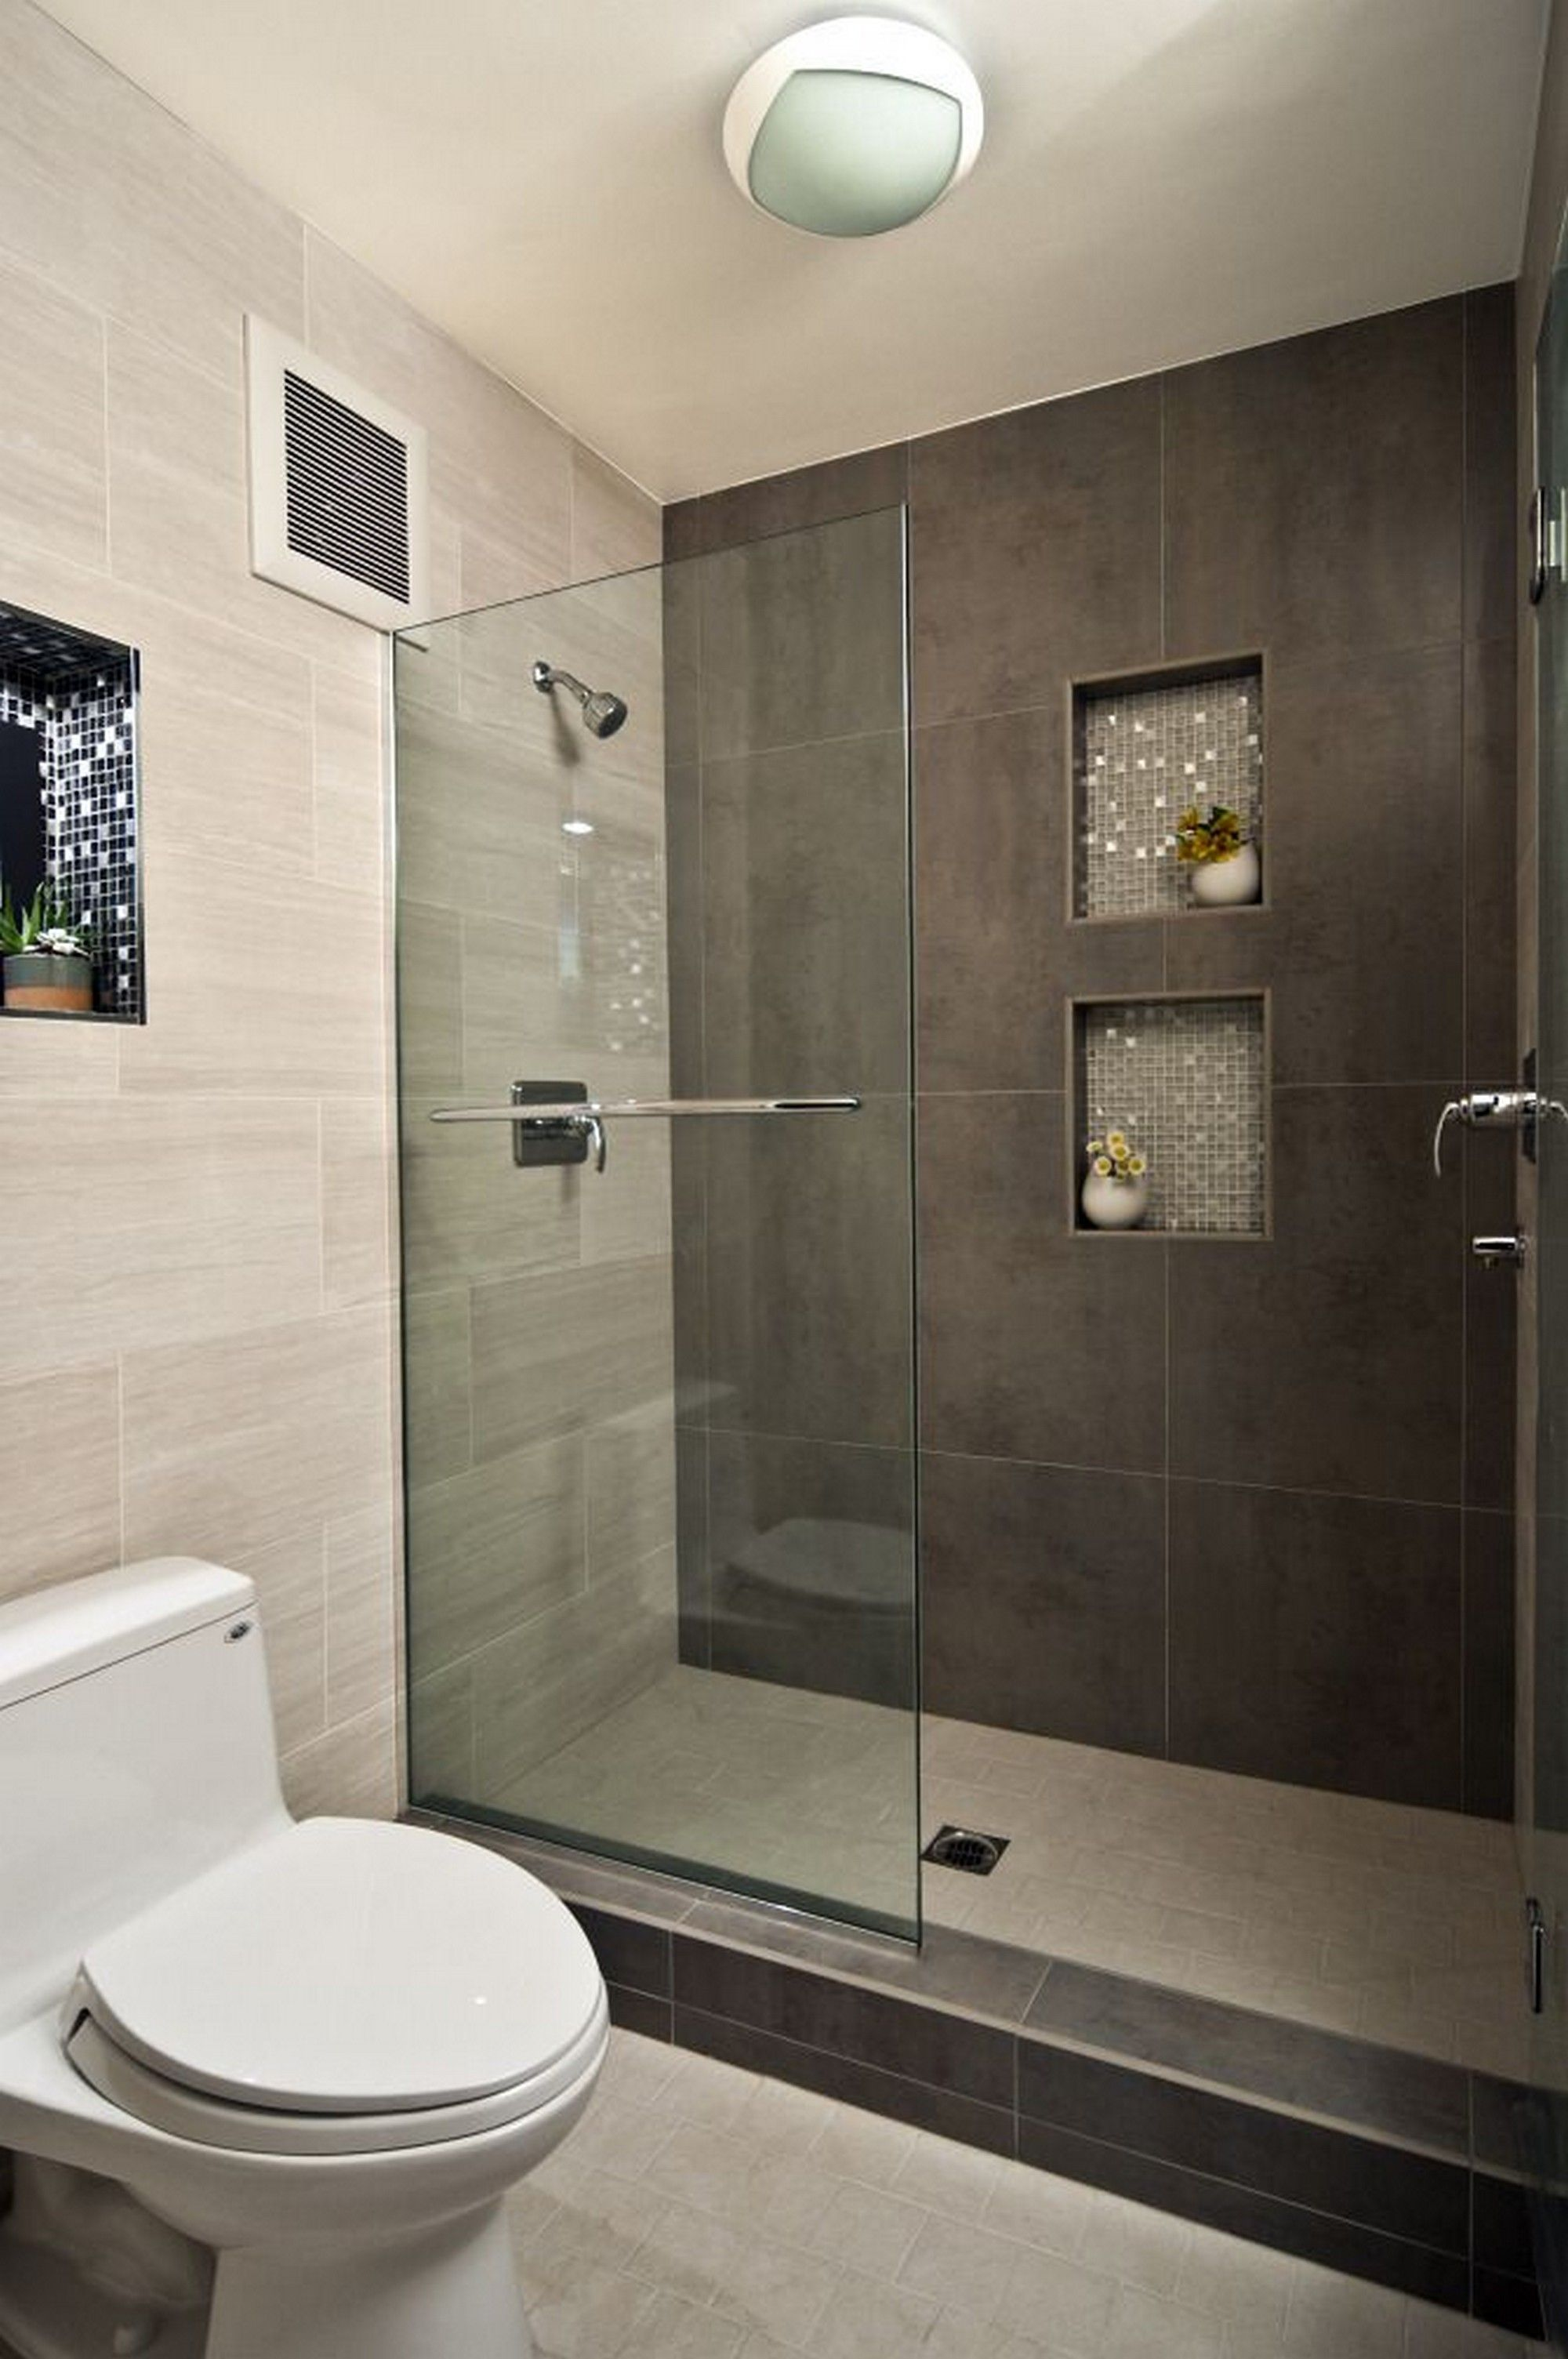 Small Bathroom Remodels Pictures modern bathroom design ideas with walk in shower | small bathroom